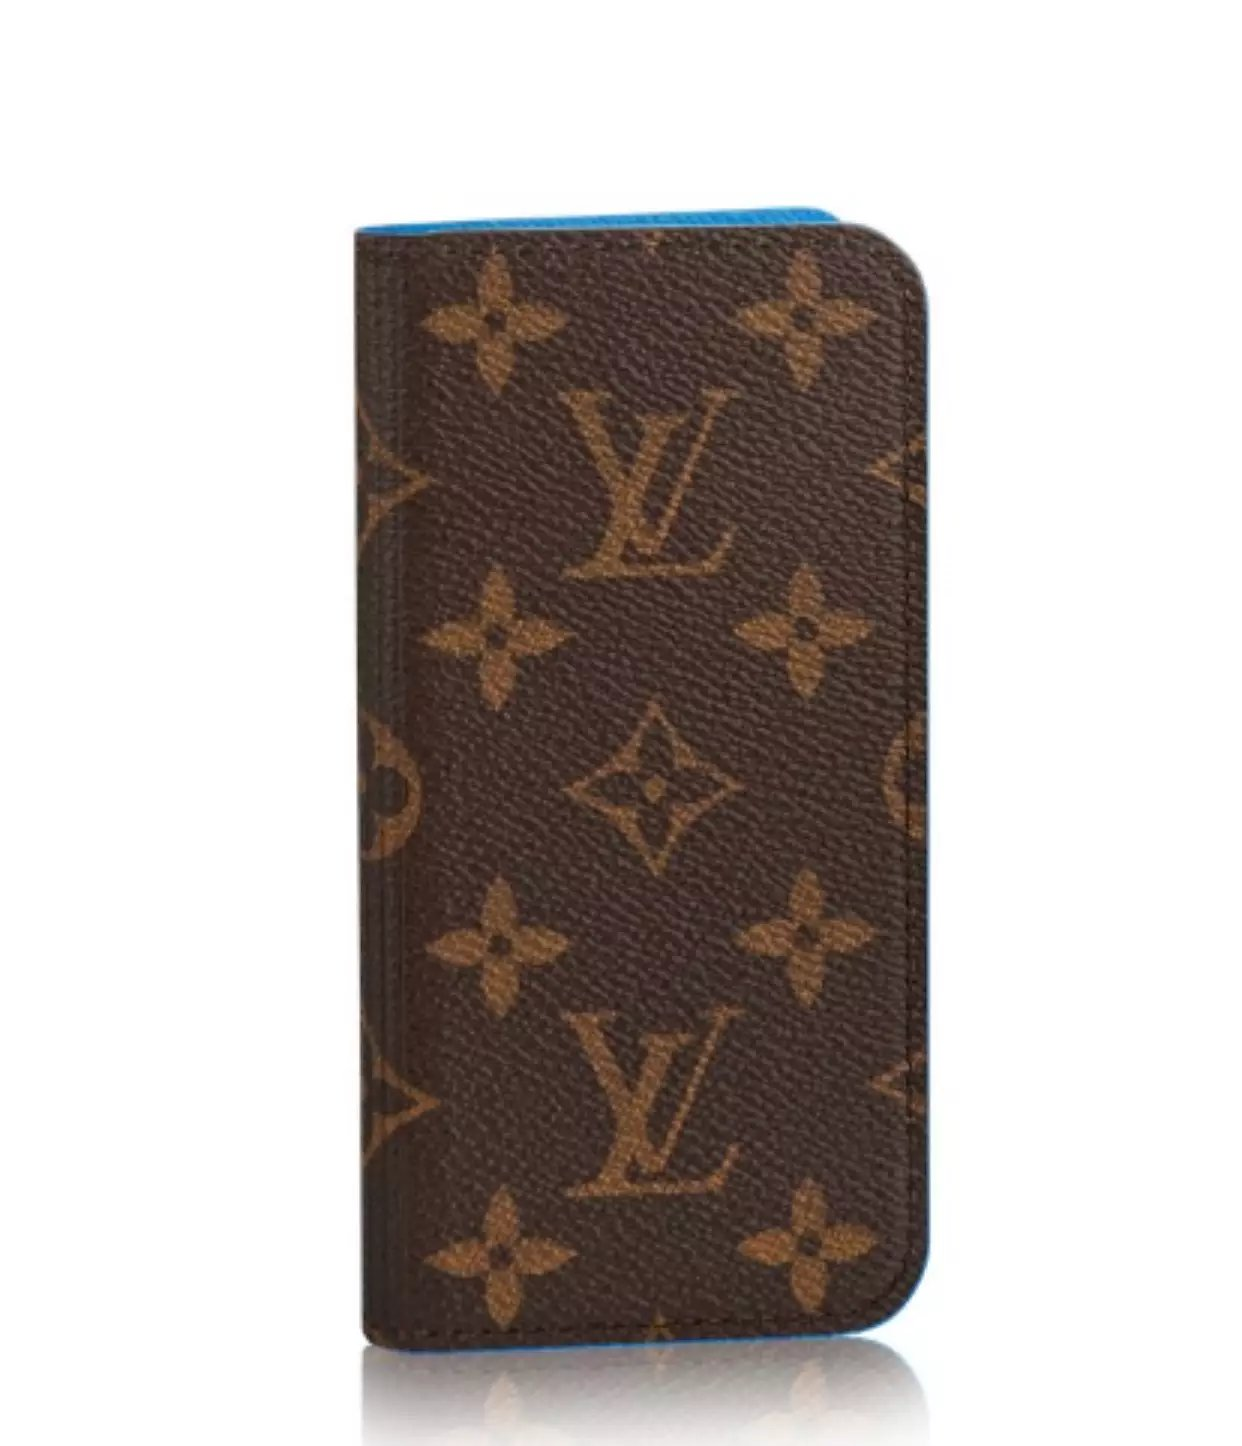 iphone lederhülle handyhüllen für iphone Louis Vuitton iphone7 hülle handyhülle iphone 7 glitzer iphone 7 hülle mit spruch iphone 7 dünne hülle iphone 7 hülle leder braun iphone 7 hüllen handyschale mit foto